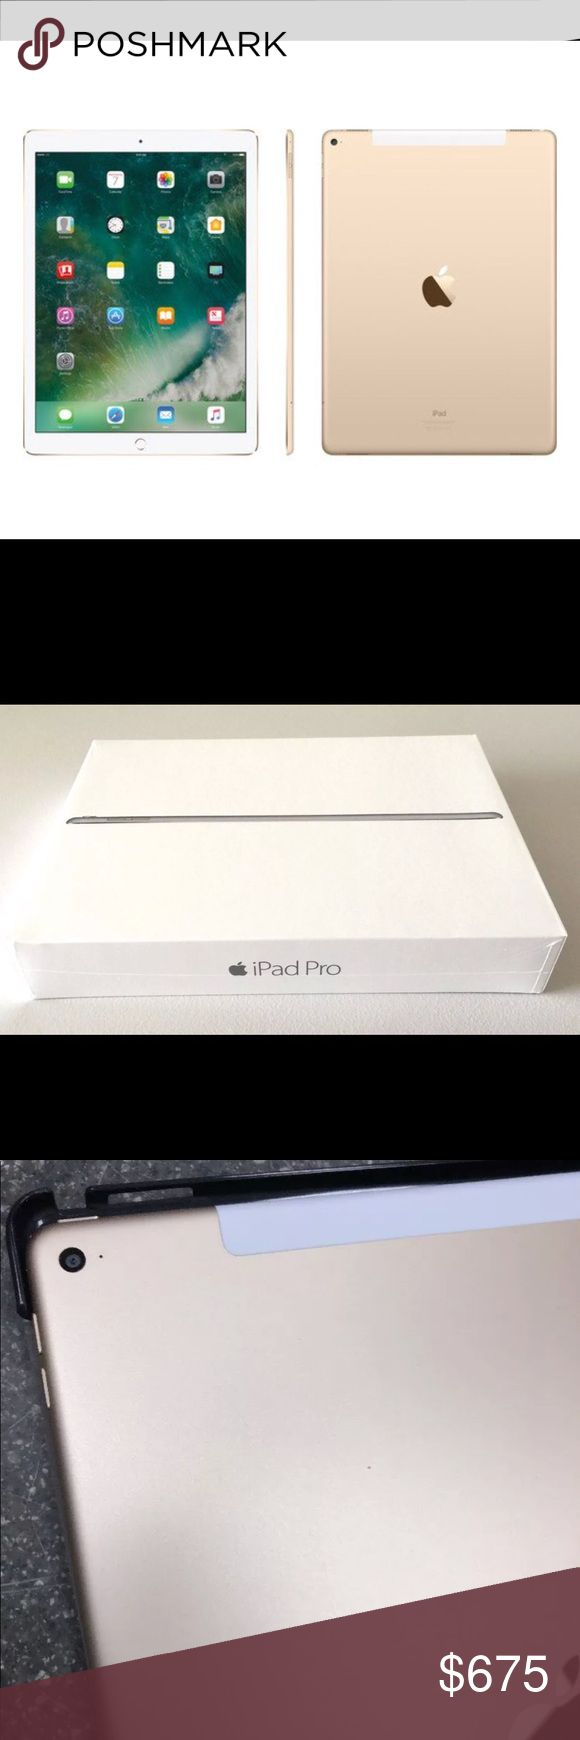 🔥12.9 inch 🍎 IPAD PRO WIFI + 4G LTE UNLOCKED EUC 12.9-inch Retina display, the largest and most capable iPad ever is only 6.9mm thin and weighs just 1.57 pounds. It has a powerful A9X chip with 64-bit desktop-class architecture, four speaker audio, advanced iSight and FaceTime HD cameras, Wi-Fi and LTE connectivity, iCloud, the breakthrough Touch ID fingerprint sensor EUC Gorilla glass placed on day of purchase  Stand case included  Original box and plastic cover that was with iPad when…